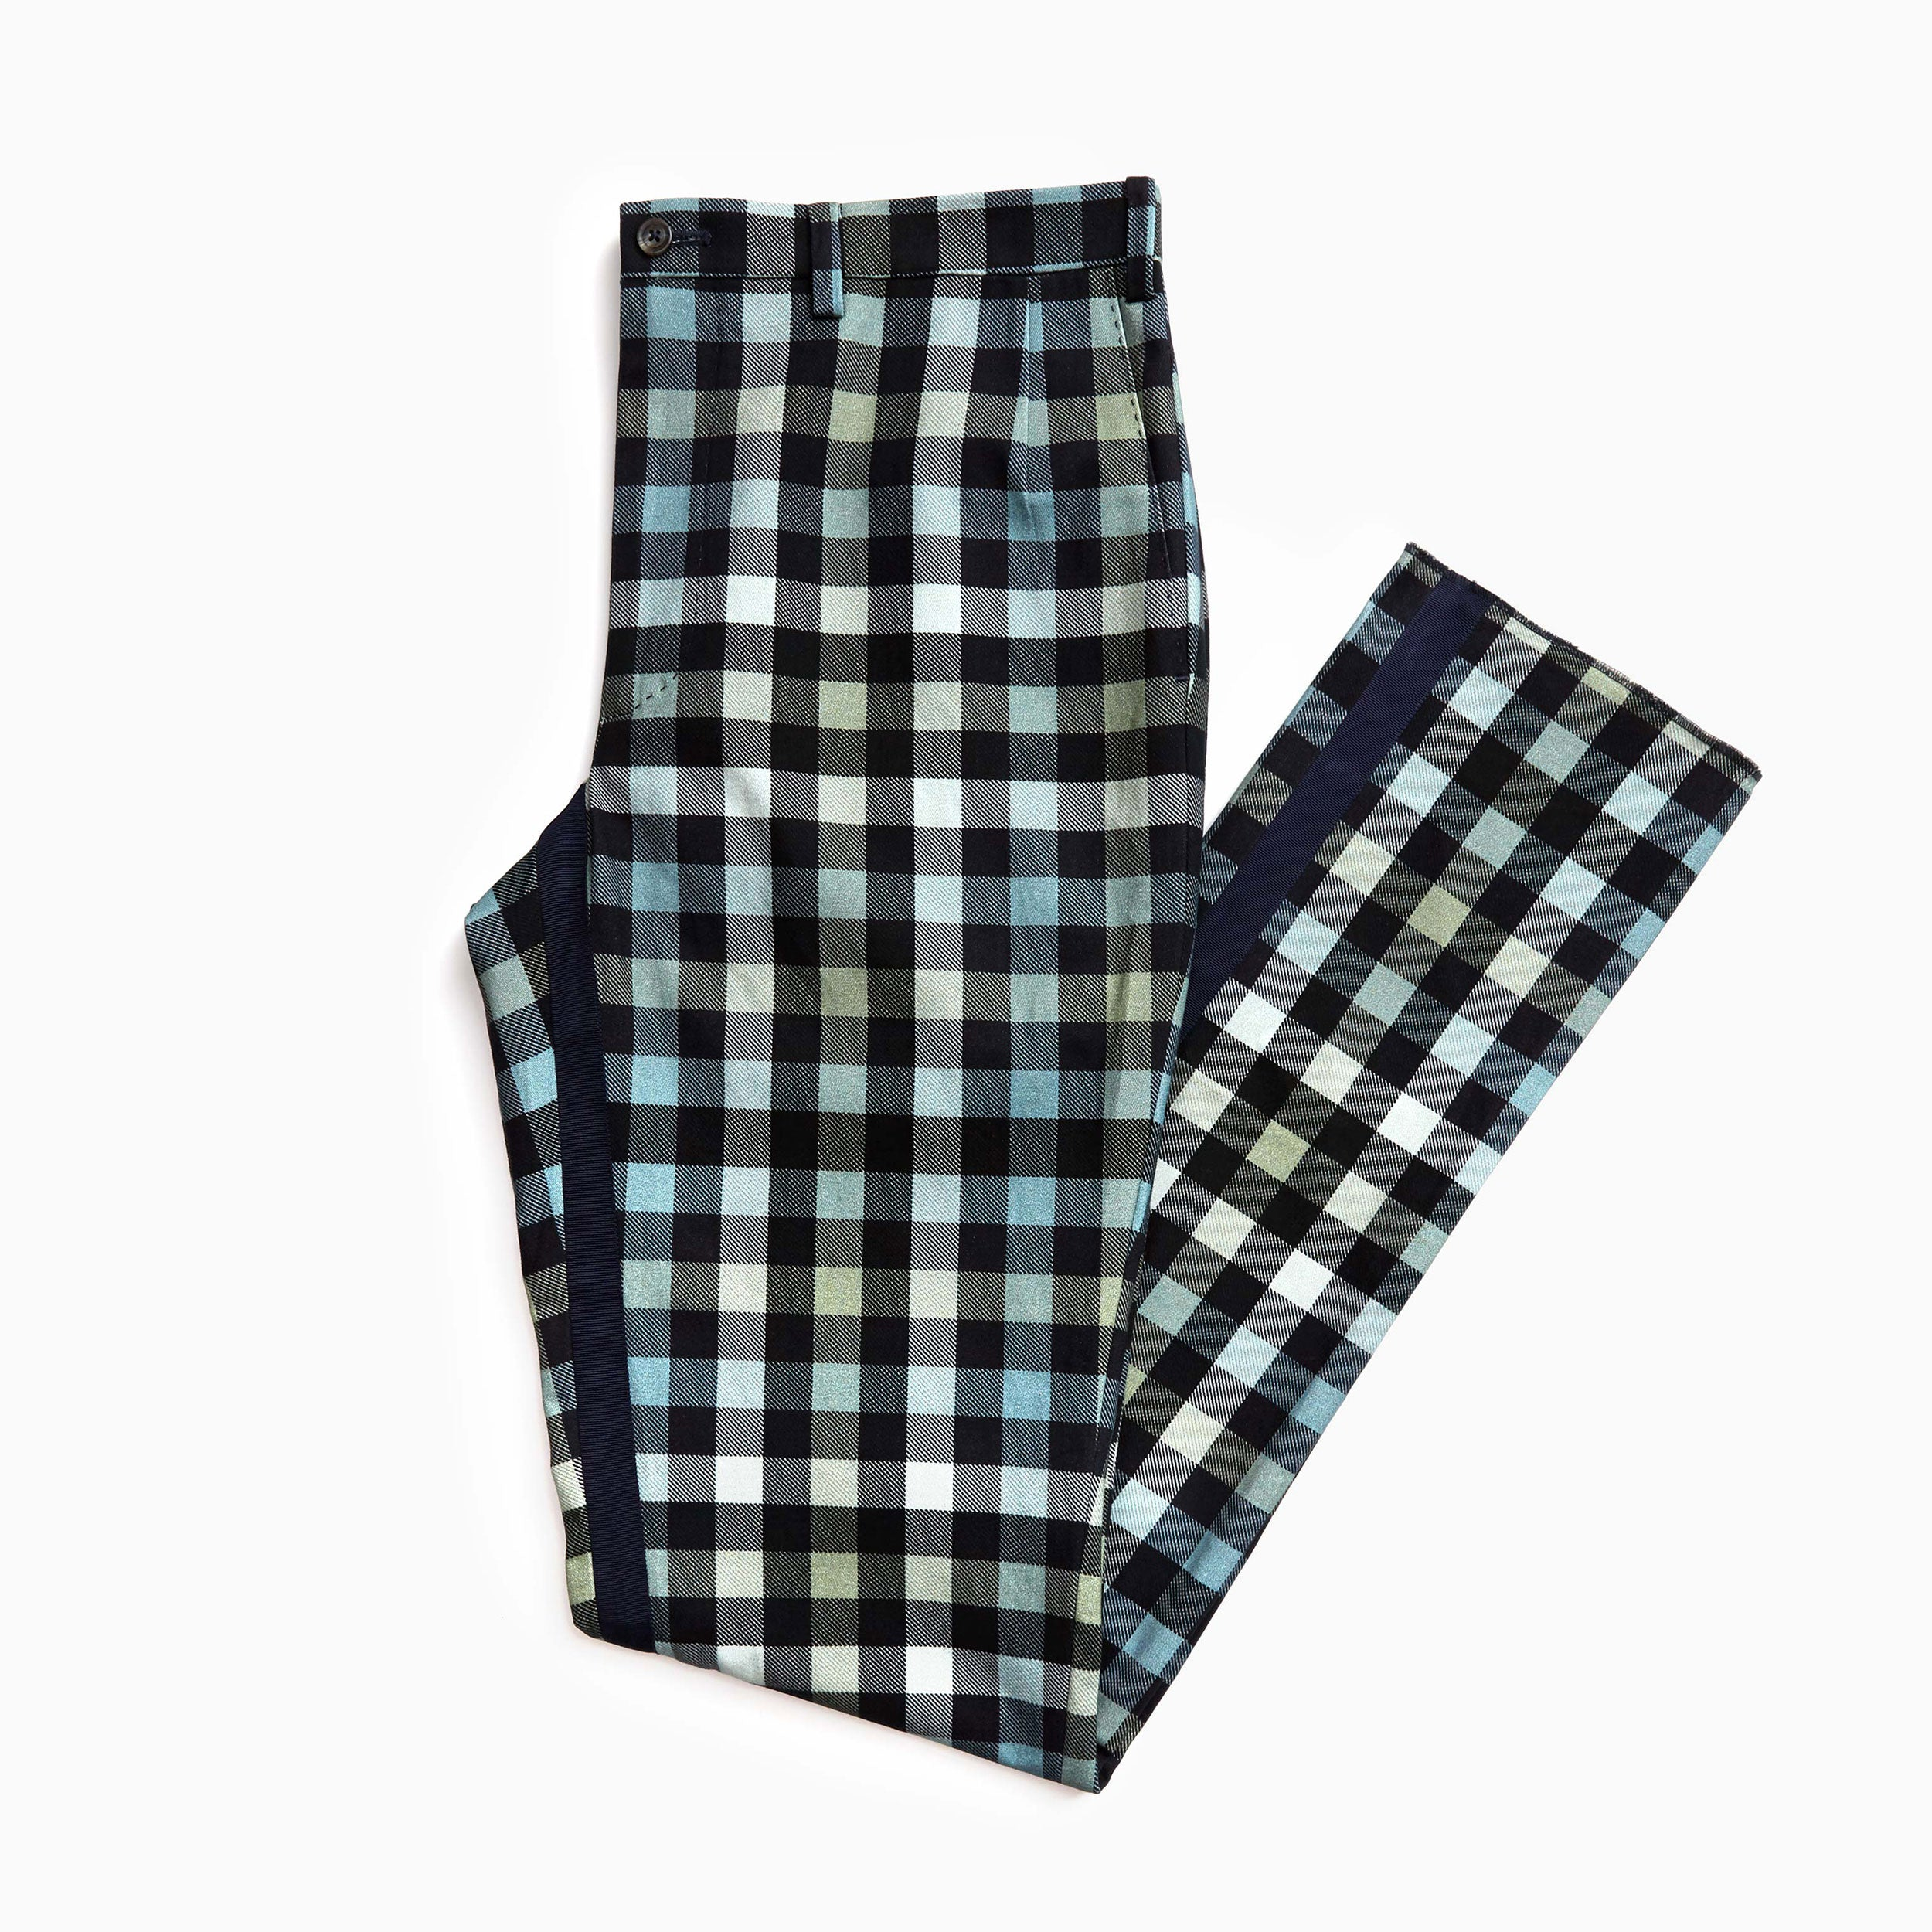 The Navy Working Uniform Plaid Trouser